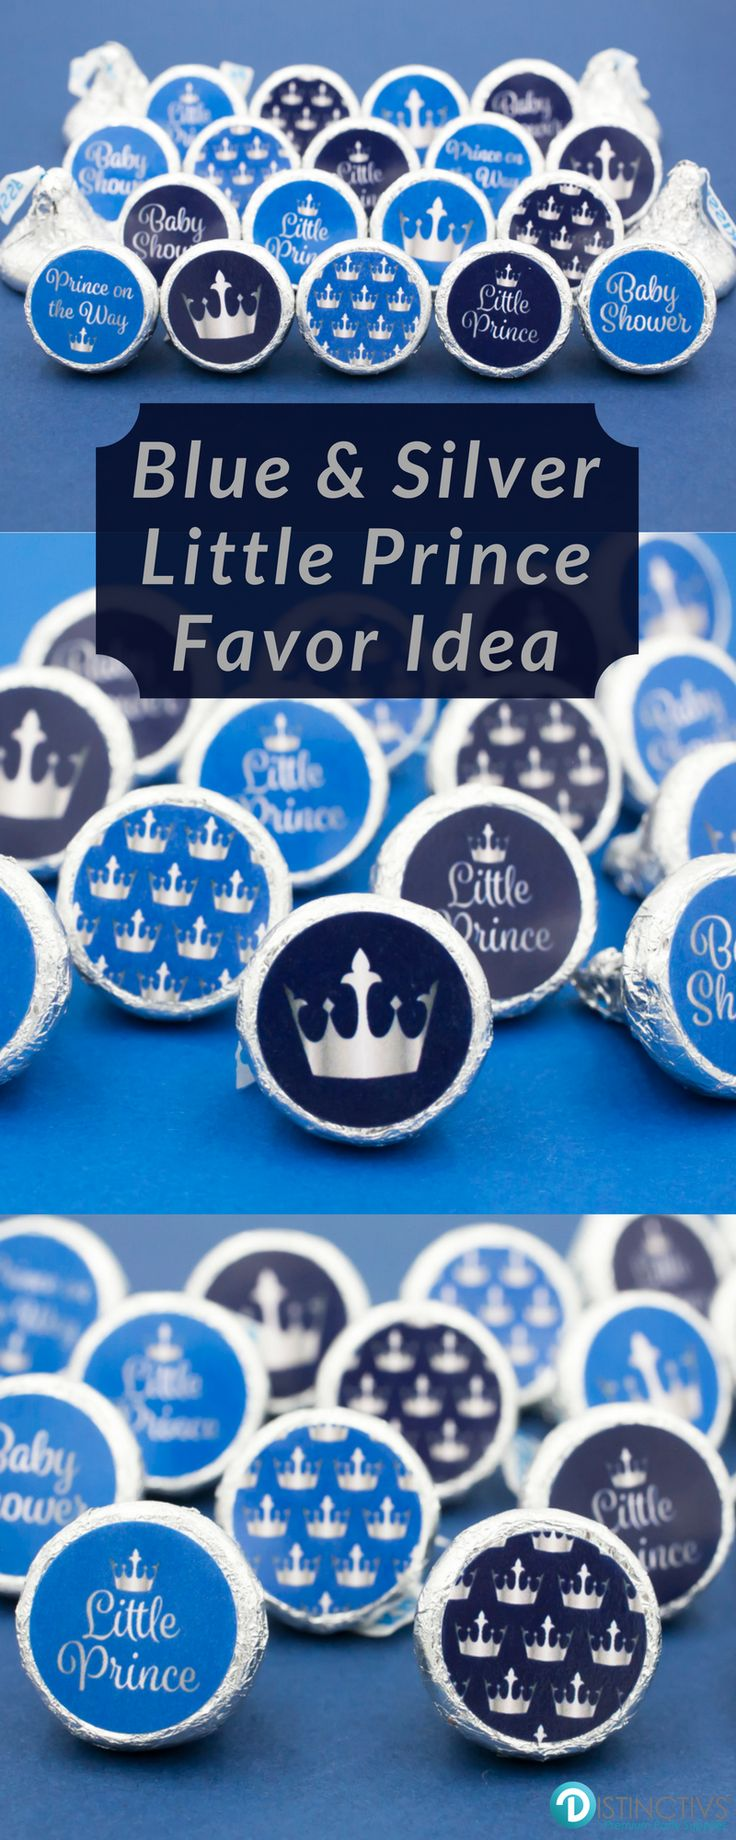 Add these Silver and Blue Little Prince baby shower party favor stickers to a Hershey's Kisses or other small candy for a simple and easy party favor or table decoration.  #princebabyshower